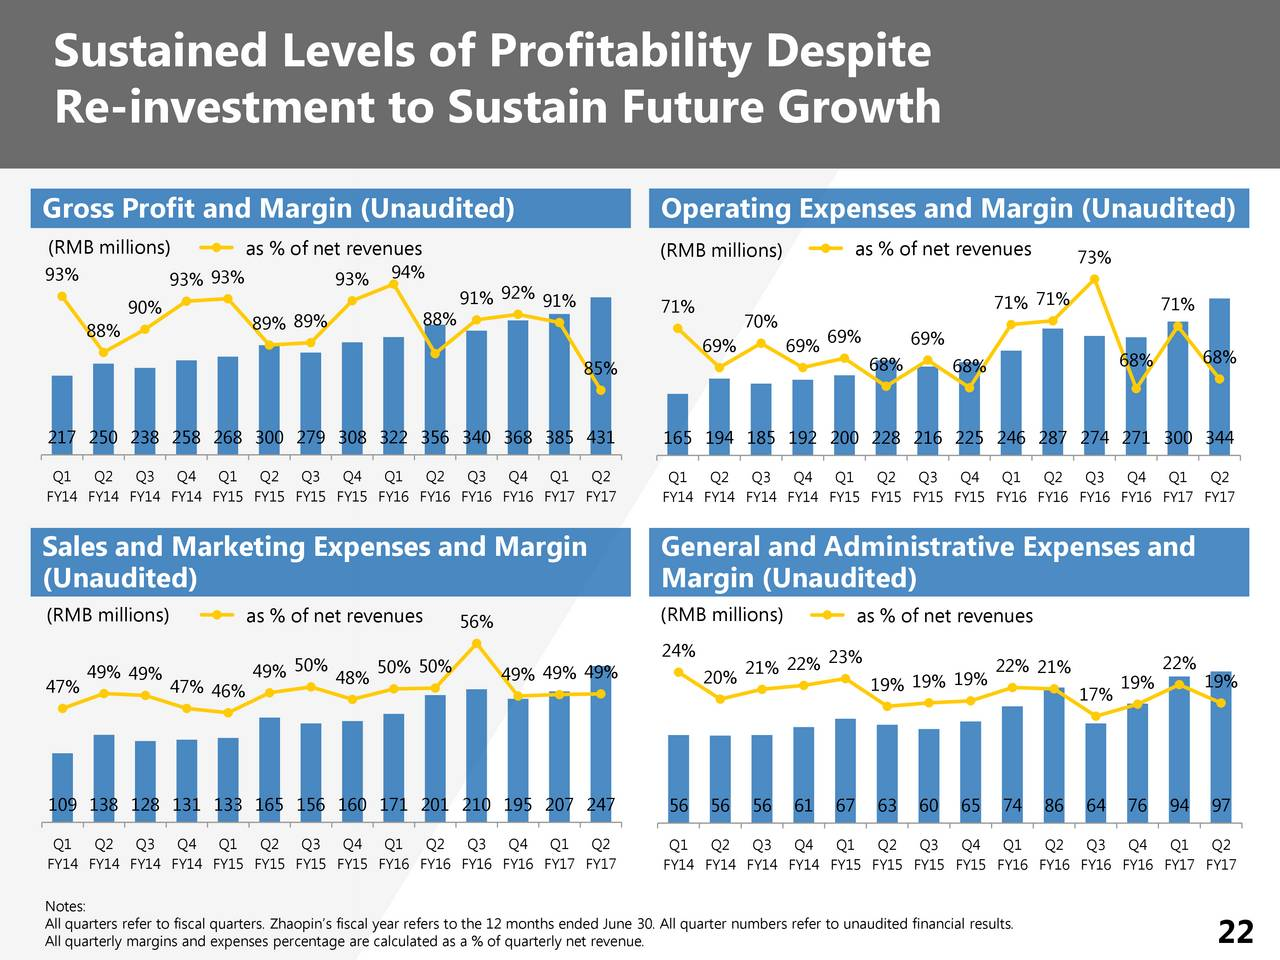 investment and net operating profit Gross profit, operating profit and net profits are all closely related but they are distinct financial measurements at three different levels operating profit does not include profit earned on any investment to calculate 'operating profit' one should properly understand what items of income.